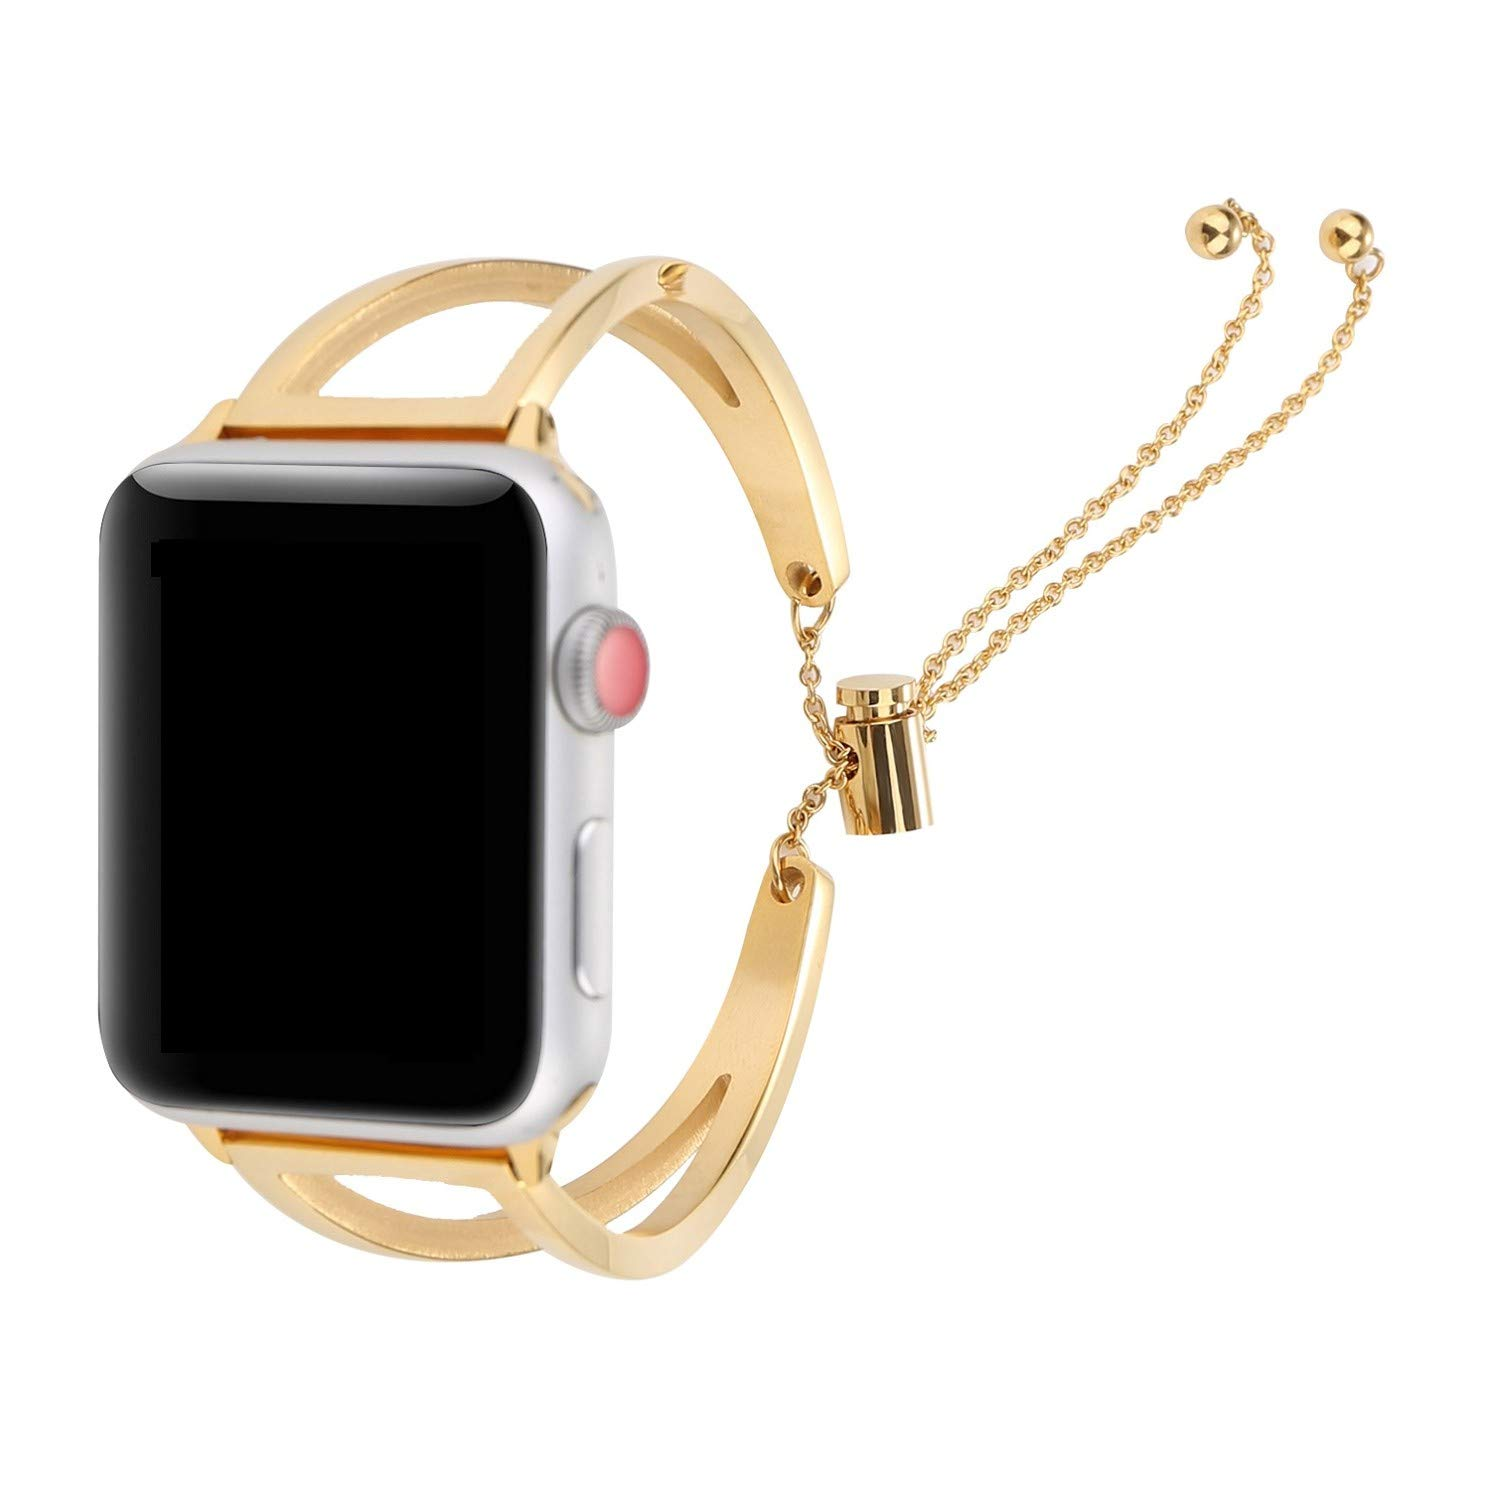 Juzzhou Band For Apple Watch iWatch Series 1/2/3 Edition Sport Stainless Steel Replacement Wristband Bracelet Wriststrap Watchband Wrist Guard Strap With Adapter Clasp For Woman Lady Girl Gold 38mm by Juzzhou (Image #1)